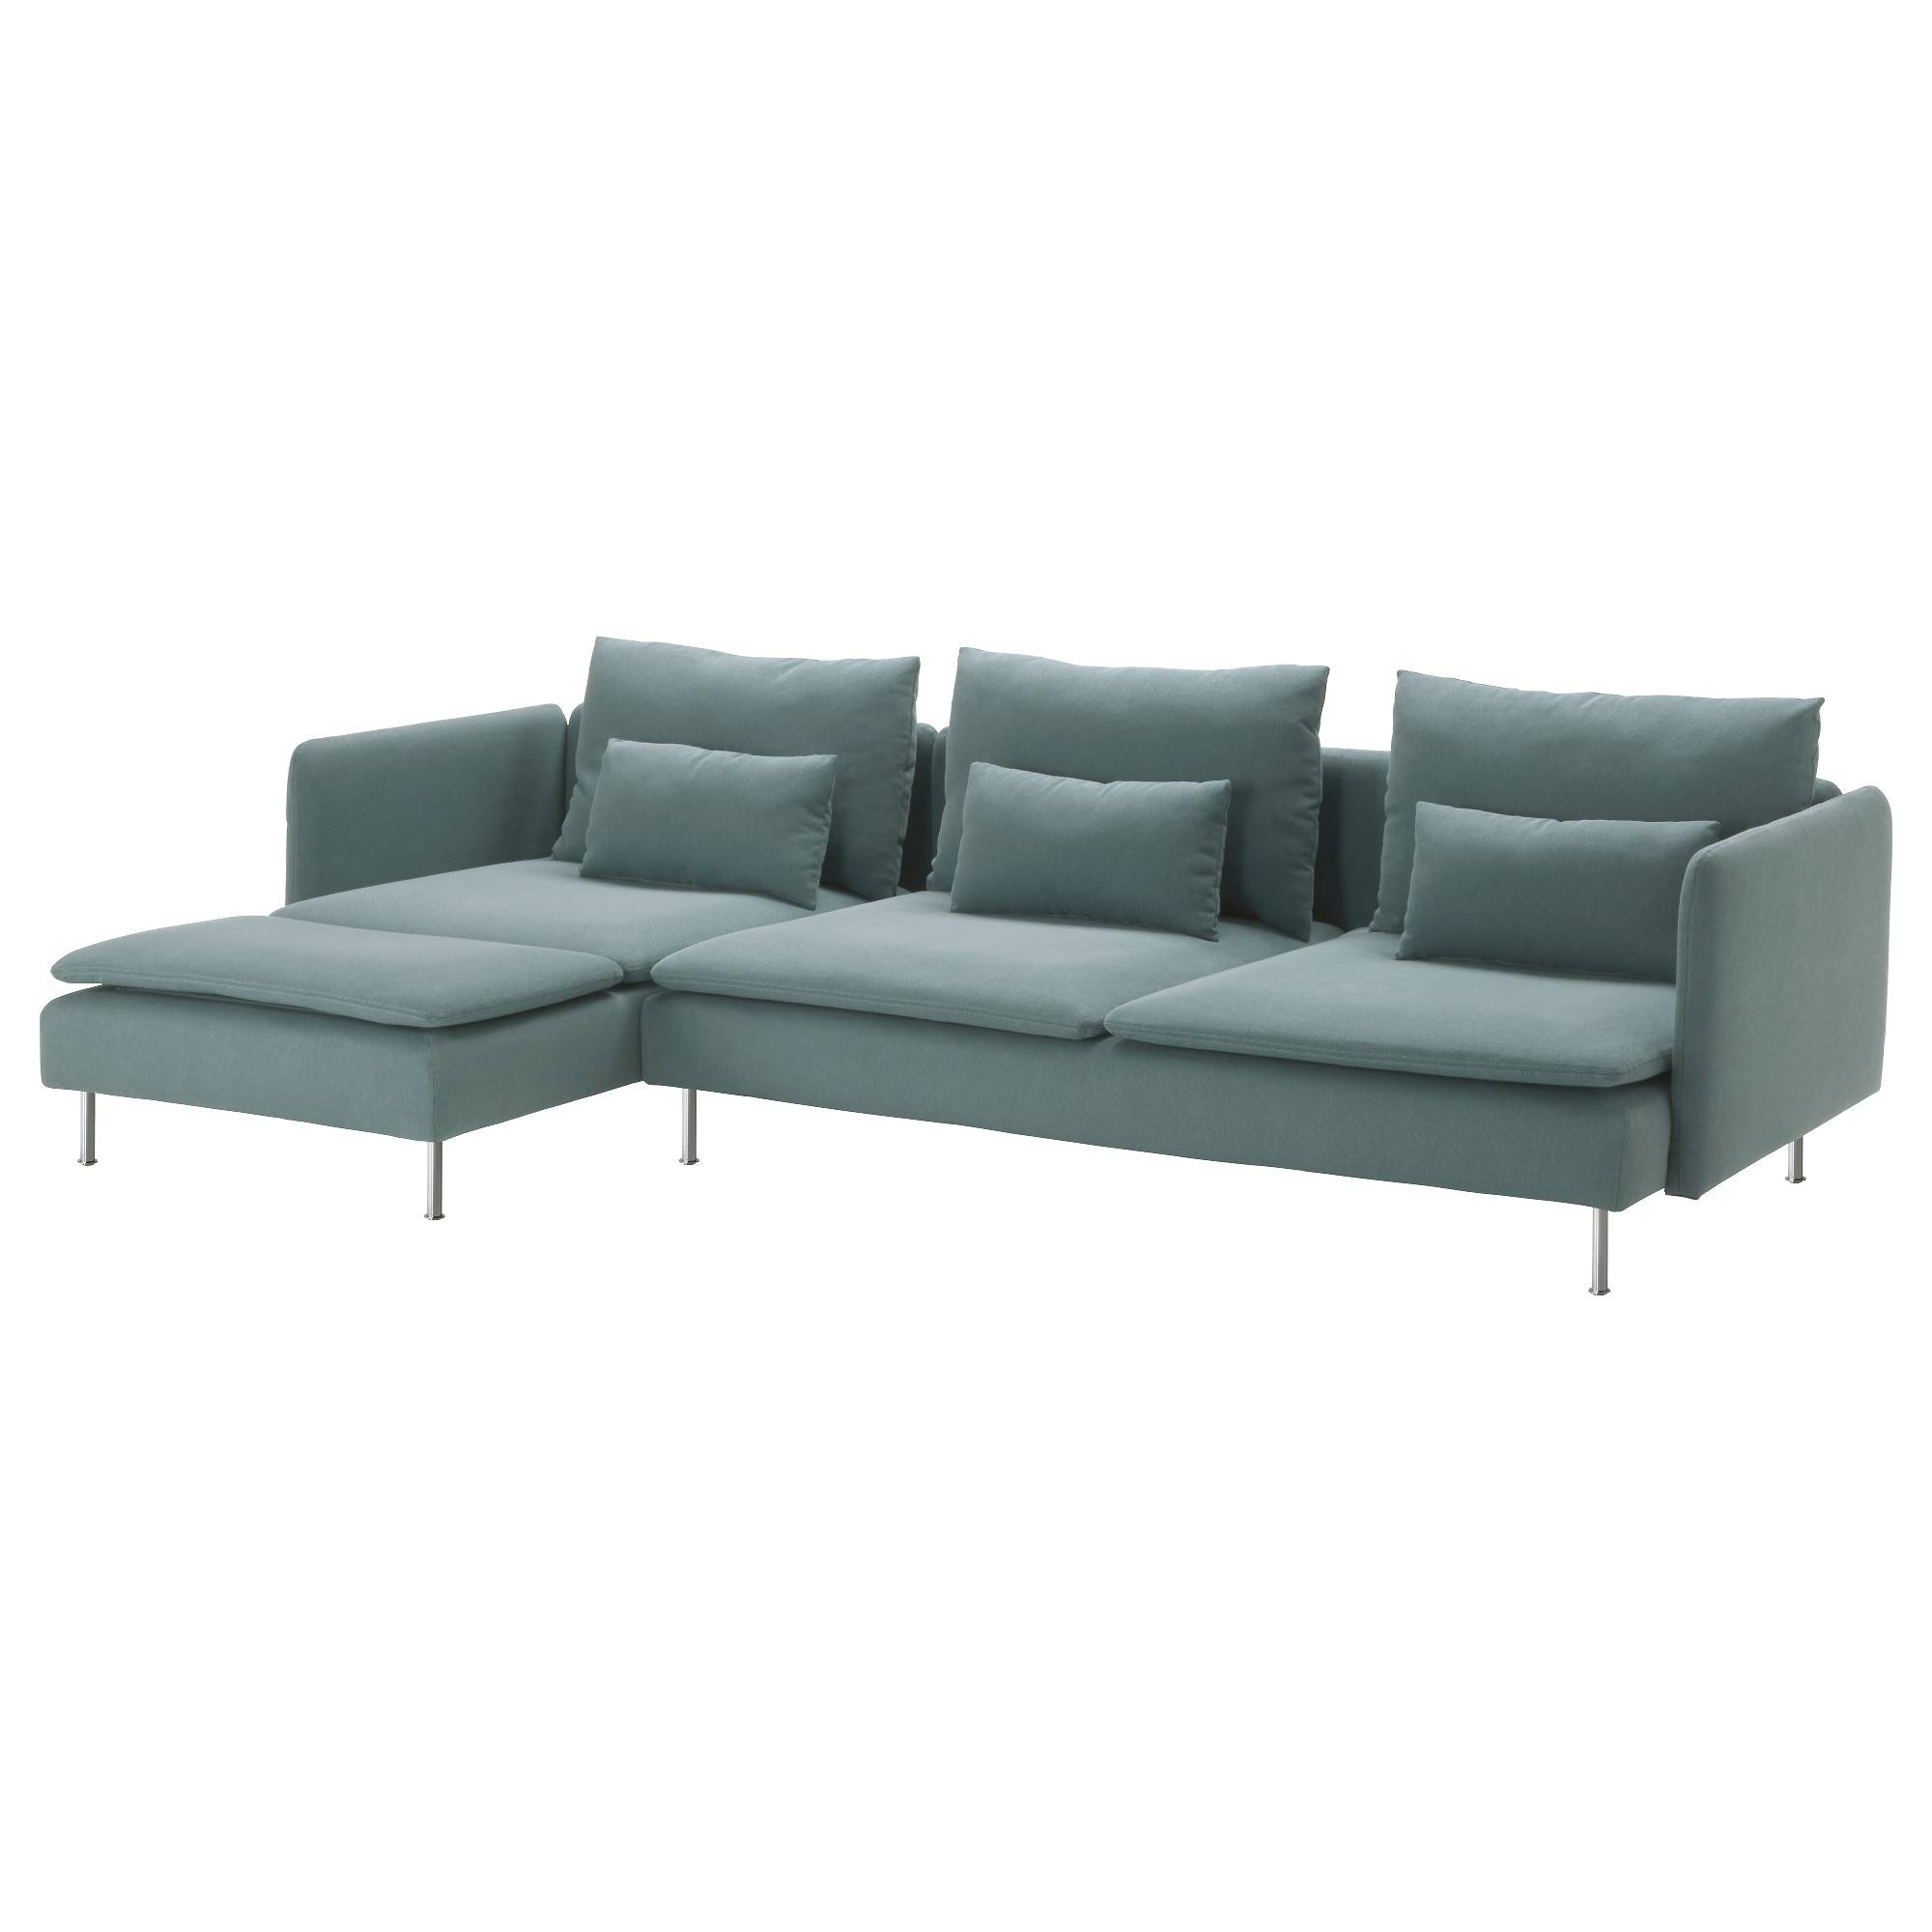 Sectional Sofas & Couches - Ikea pertaining to Armless Sectional Sofa (Image 24 of 30)